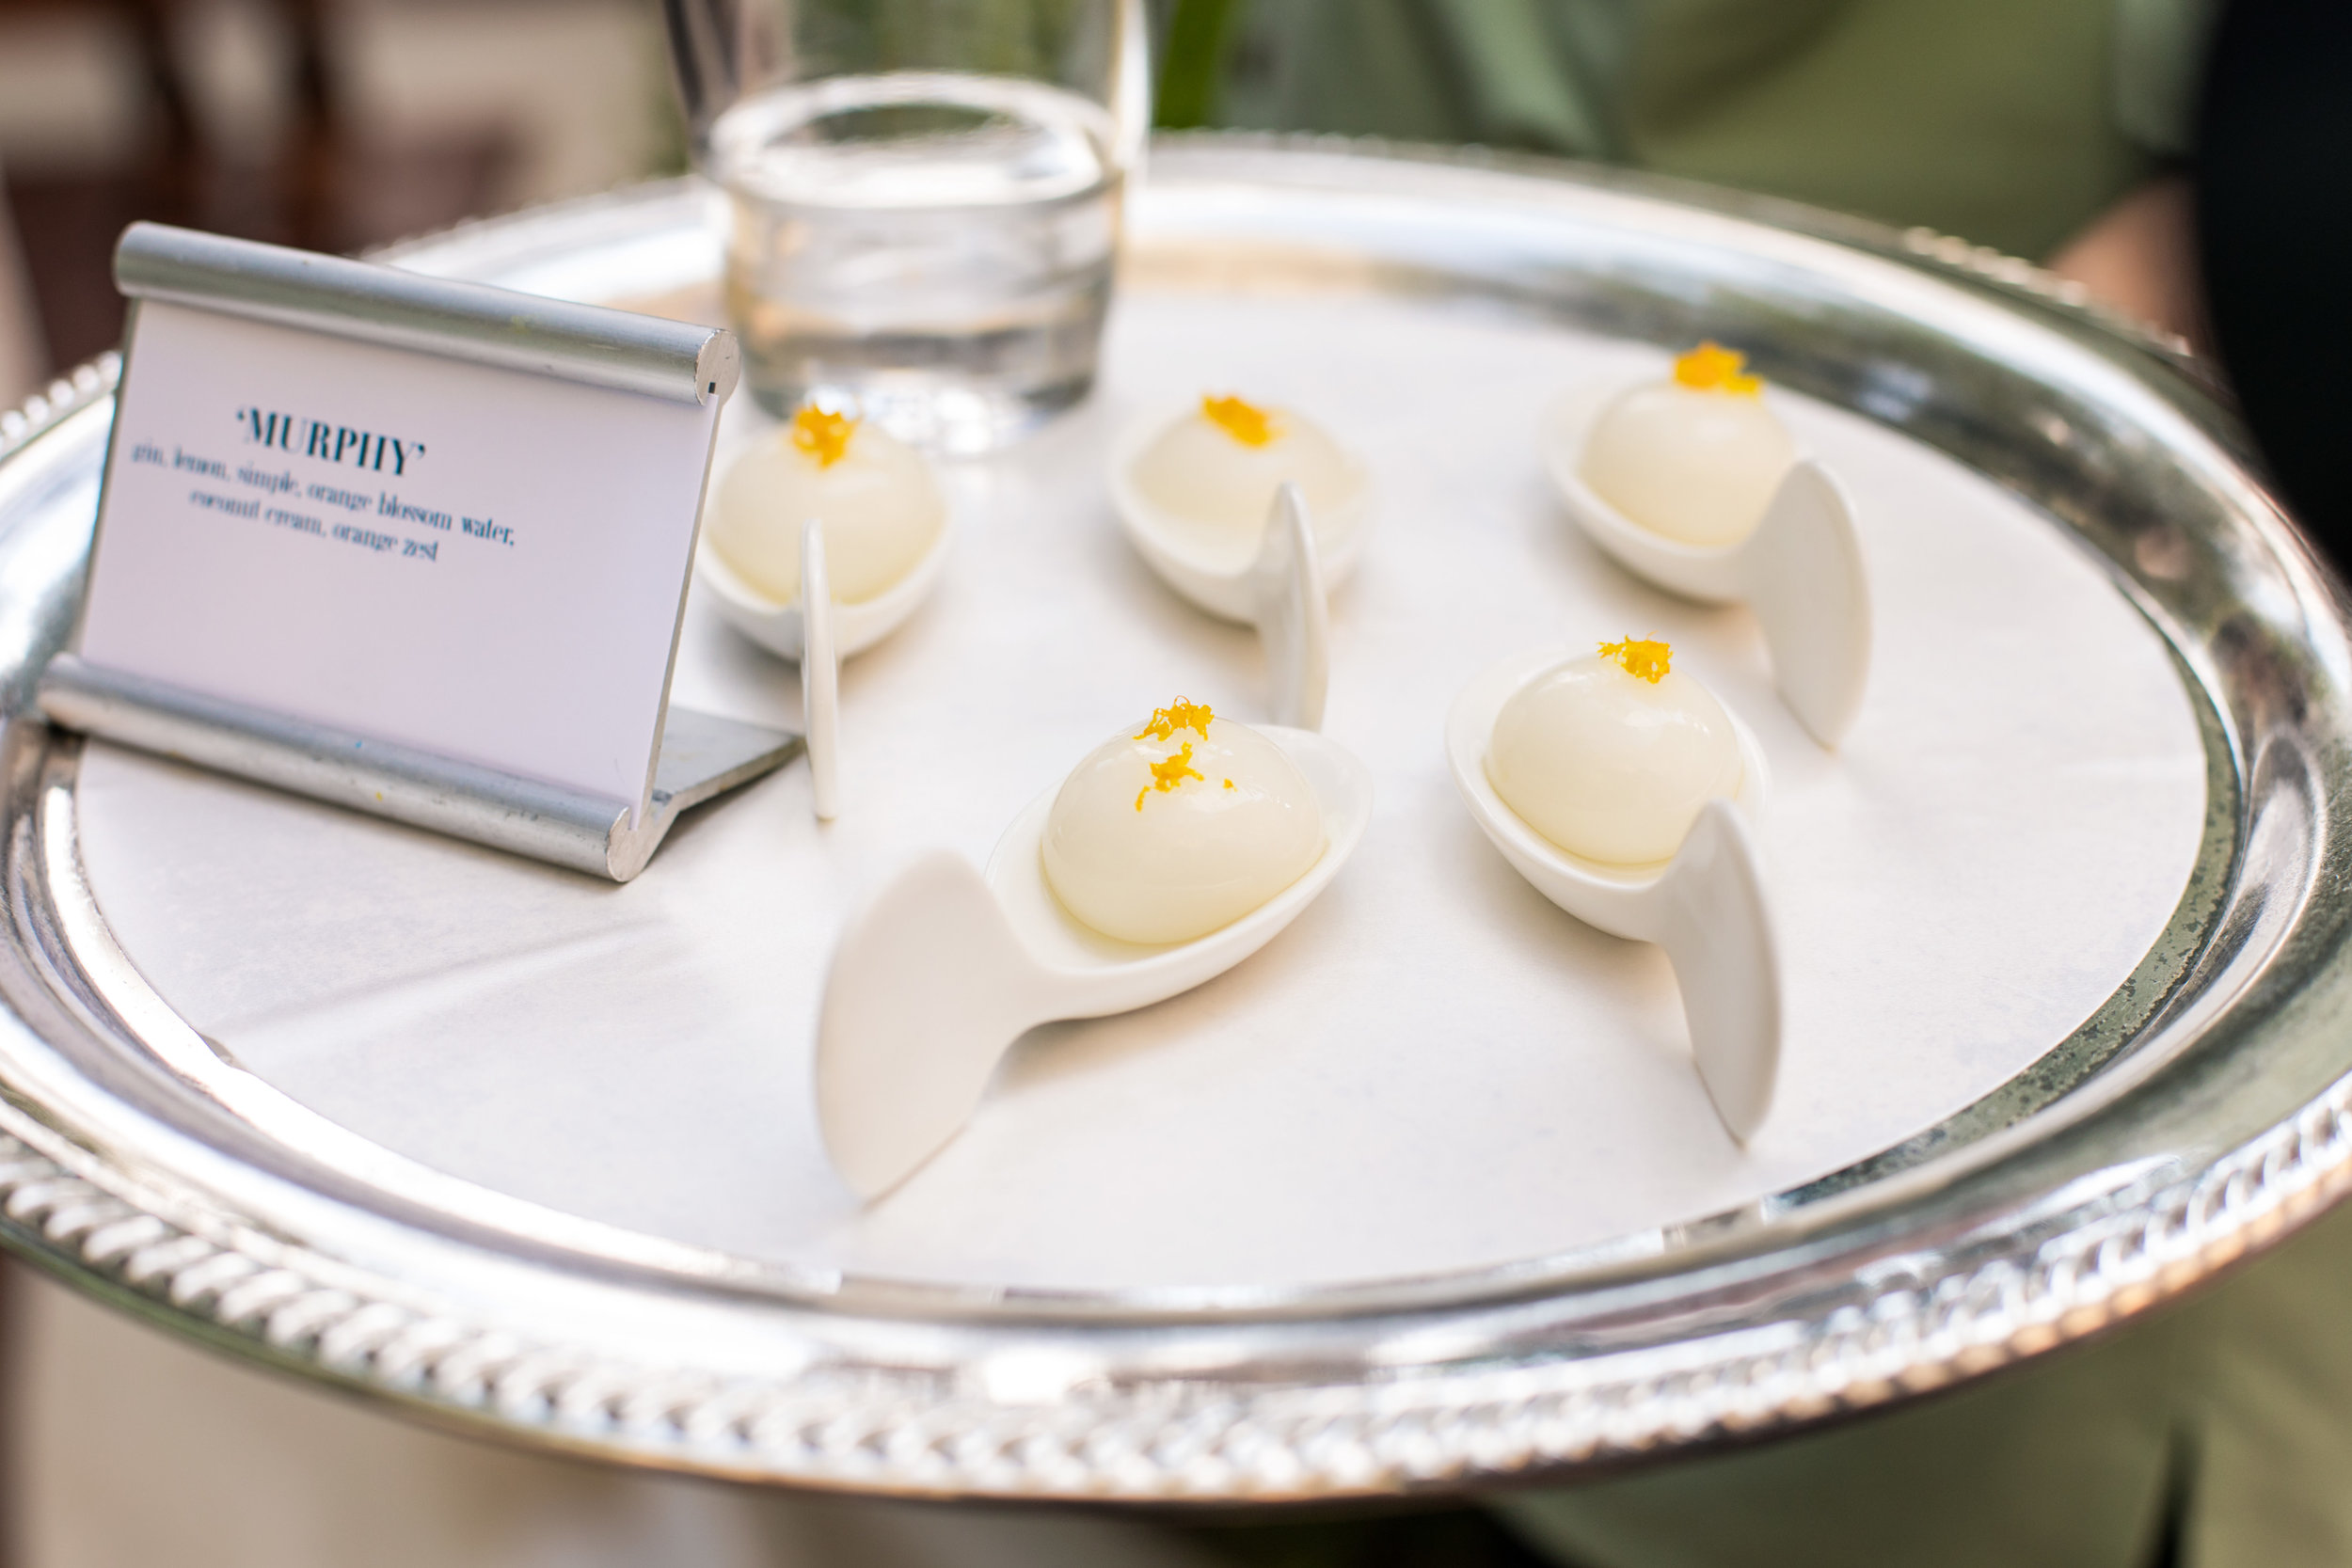 Edible Molecular Cocktails by The Grand Bevy.Wedding Planning by  Andrea Eppolito Events  · Photography by  Shandro Photo   · Wedding Venue  Four Seasons Las Vegas  · Floral and Decor by  Destination by Design  · Cake by  Four Seasons Las Vegas  · Chandeliers and Lighting by  LED Unplugged  · Dress by  Berta